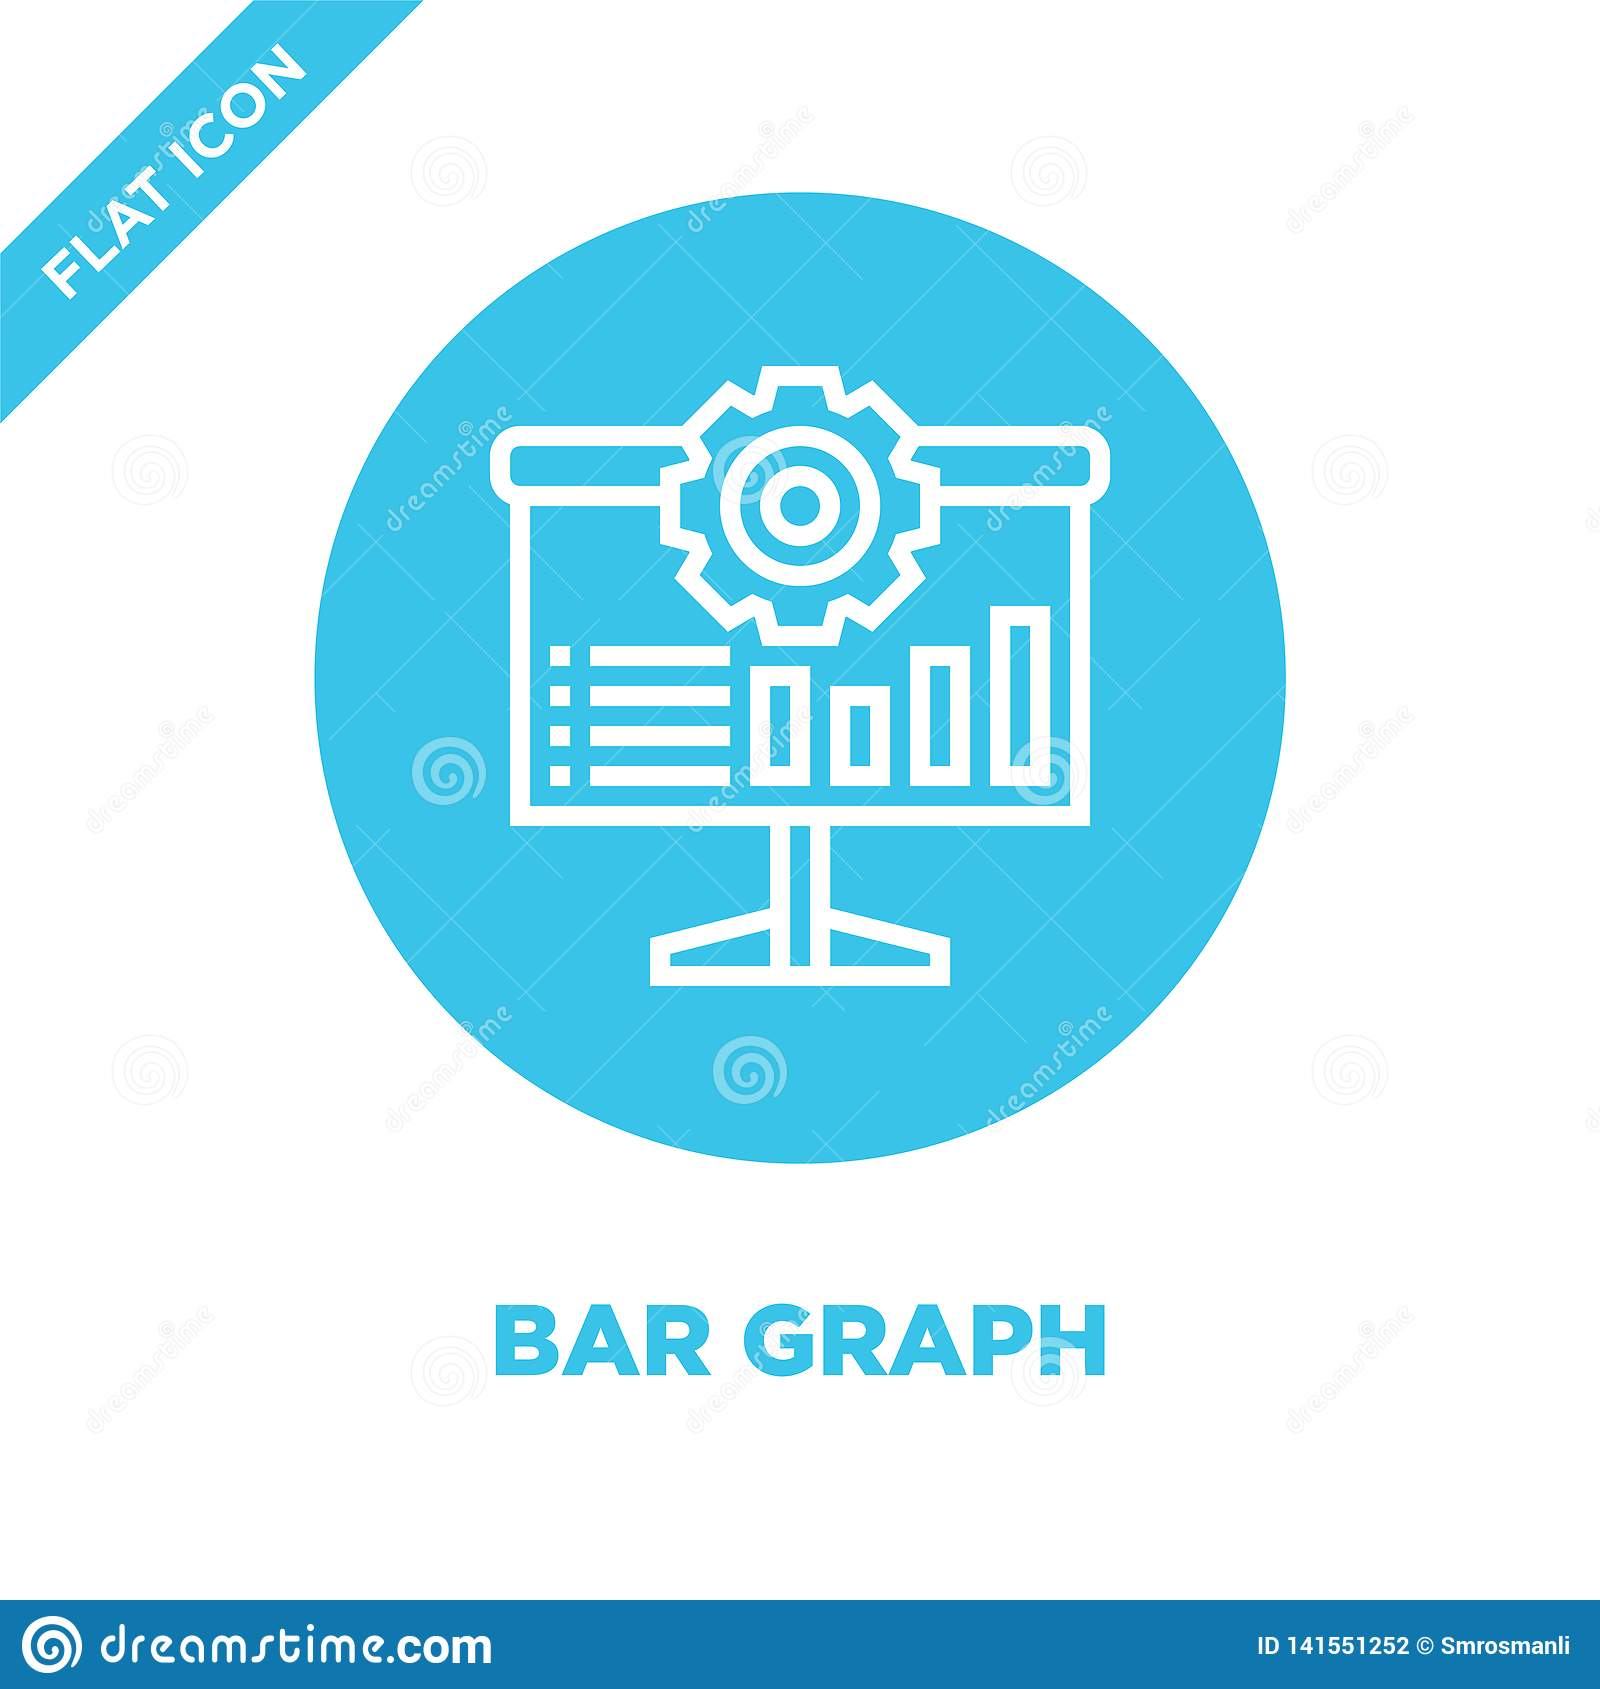 bar graph icon vector. Thin line bar graph outline icon vector illustration.bar graph symbol for use on web and mobile apps, logo